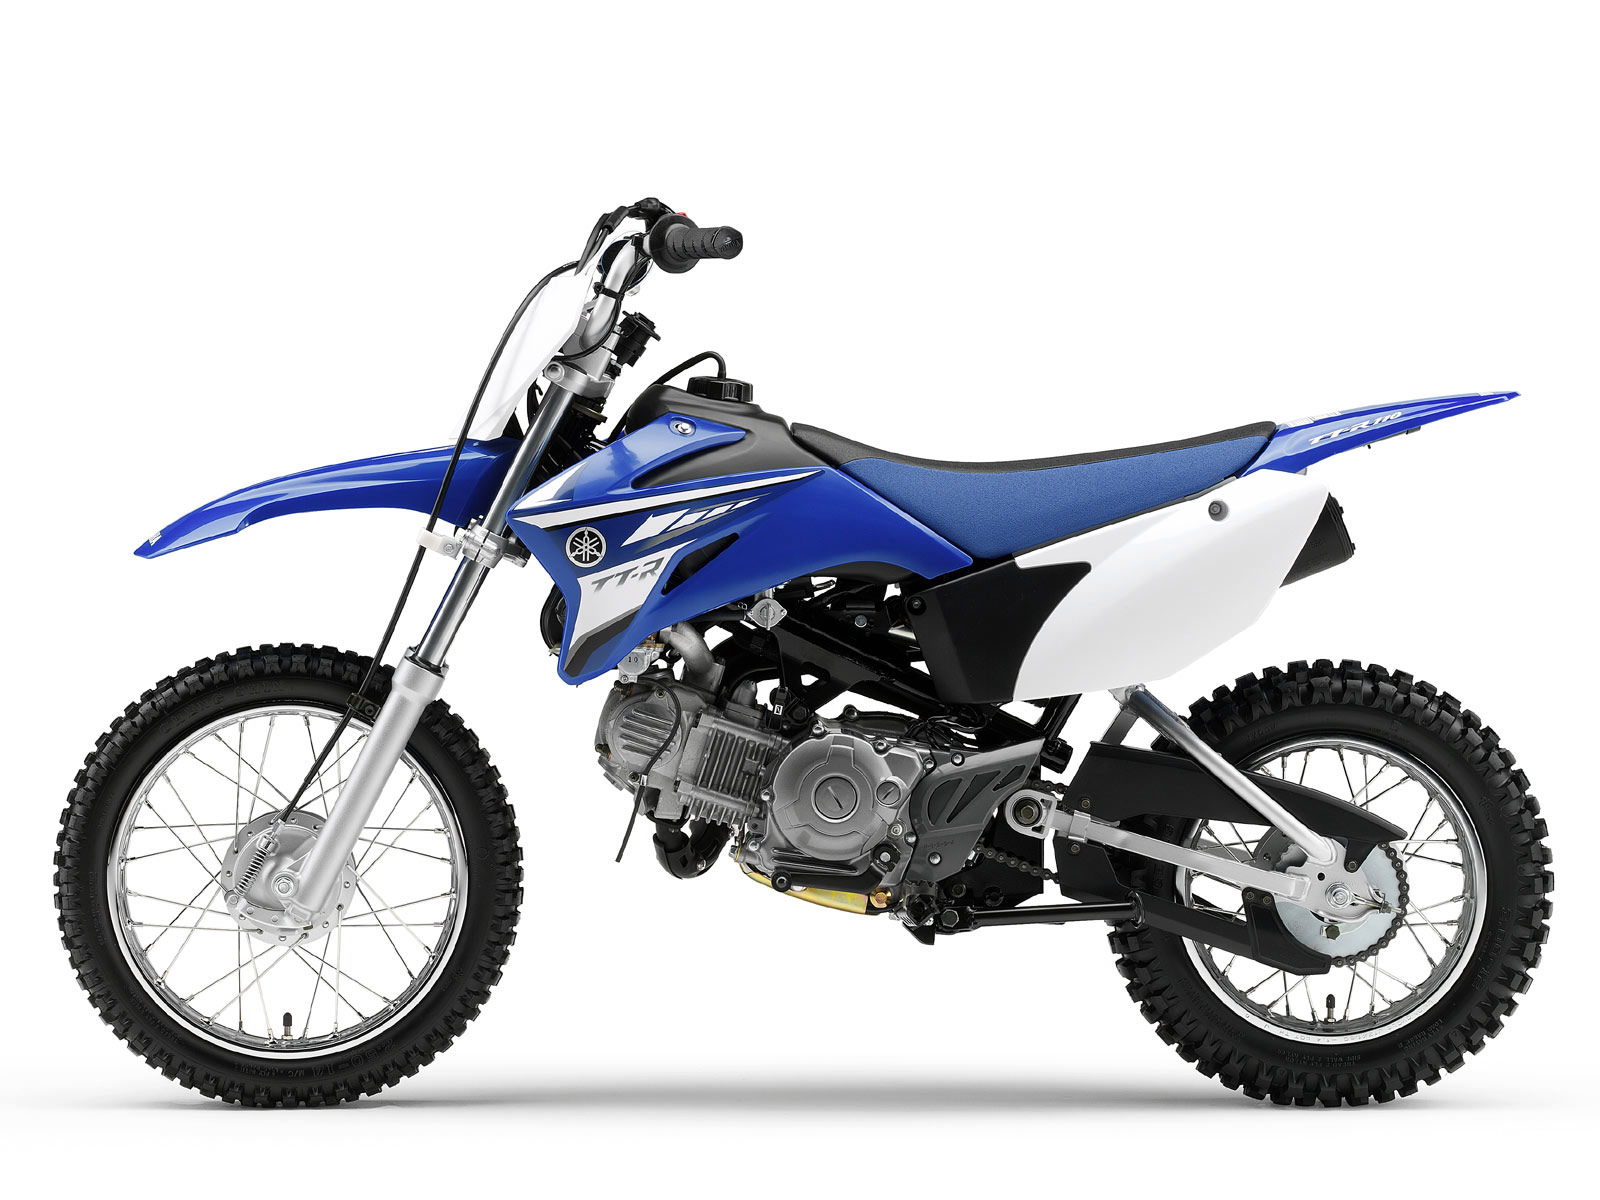 2008 yamaha tt r110e review specifications pictures for Yamaha 110 atv for sale